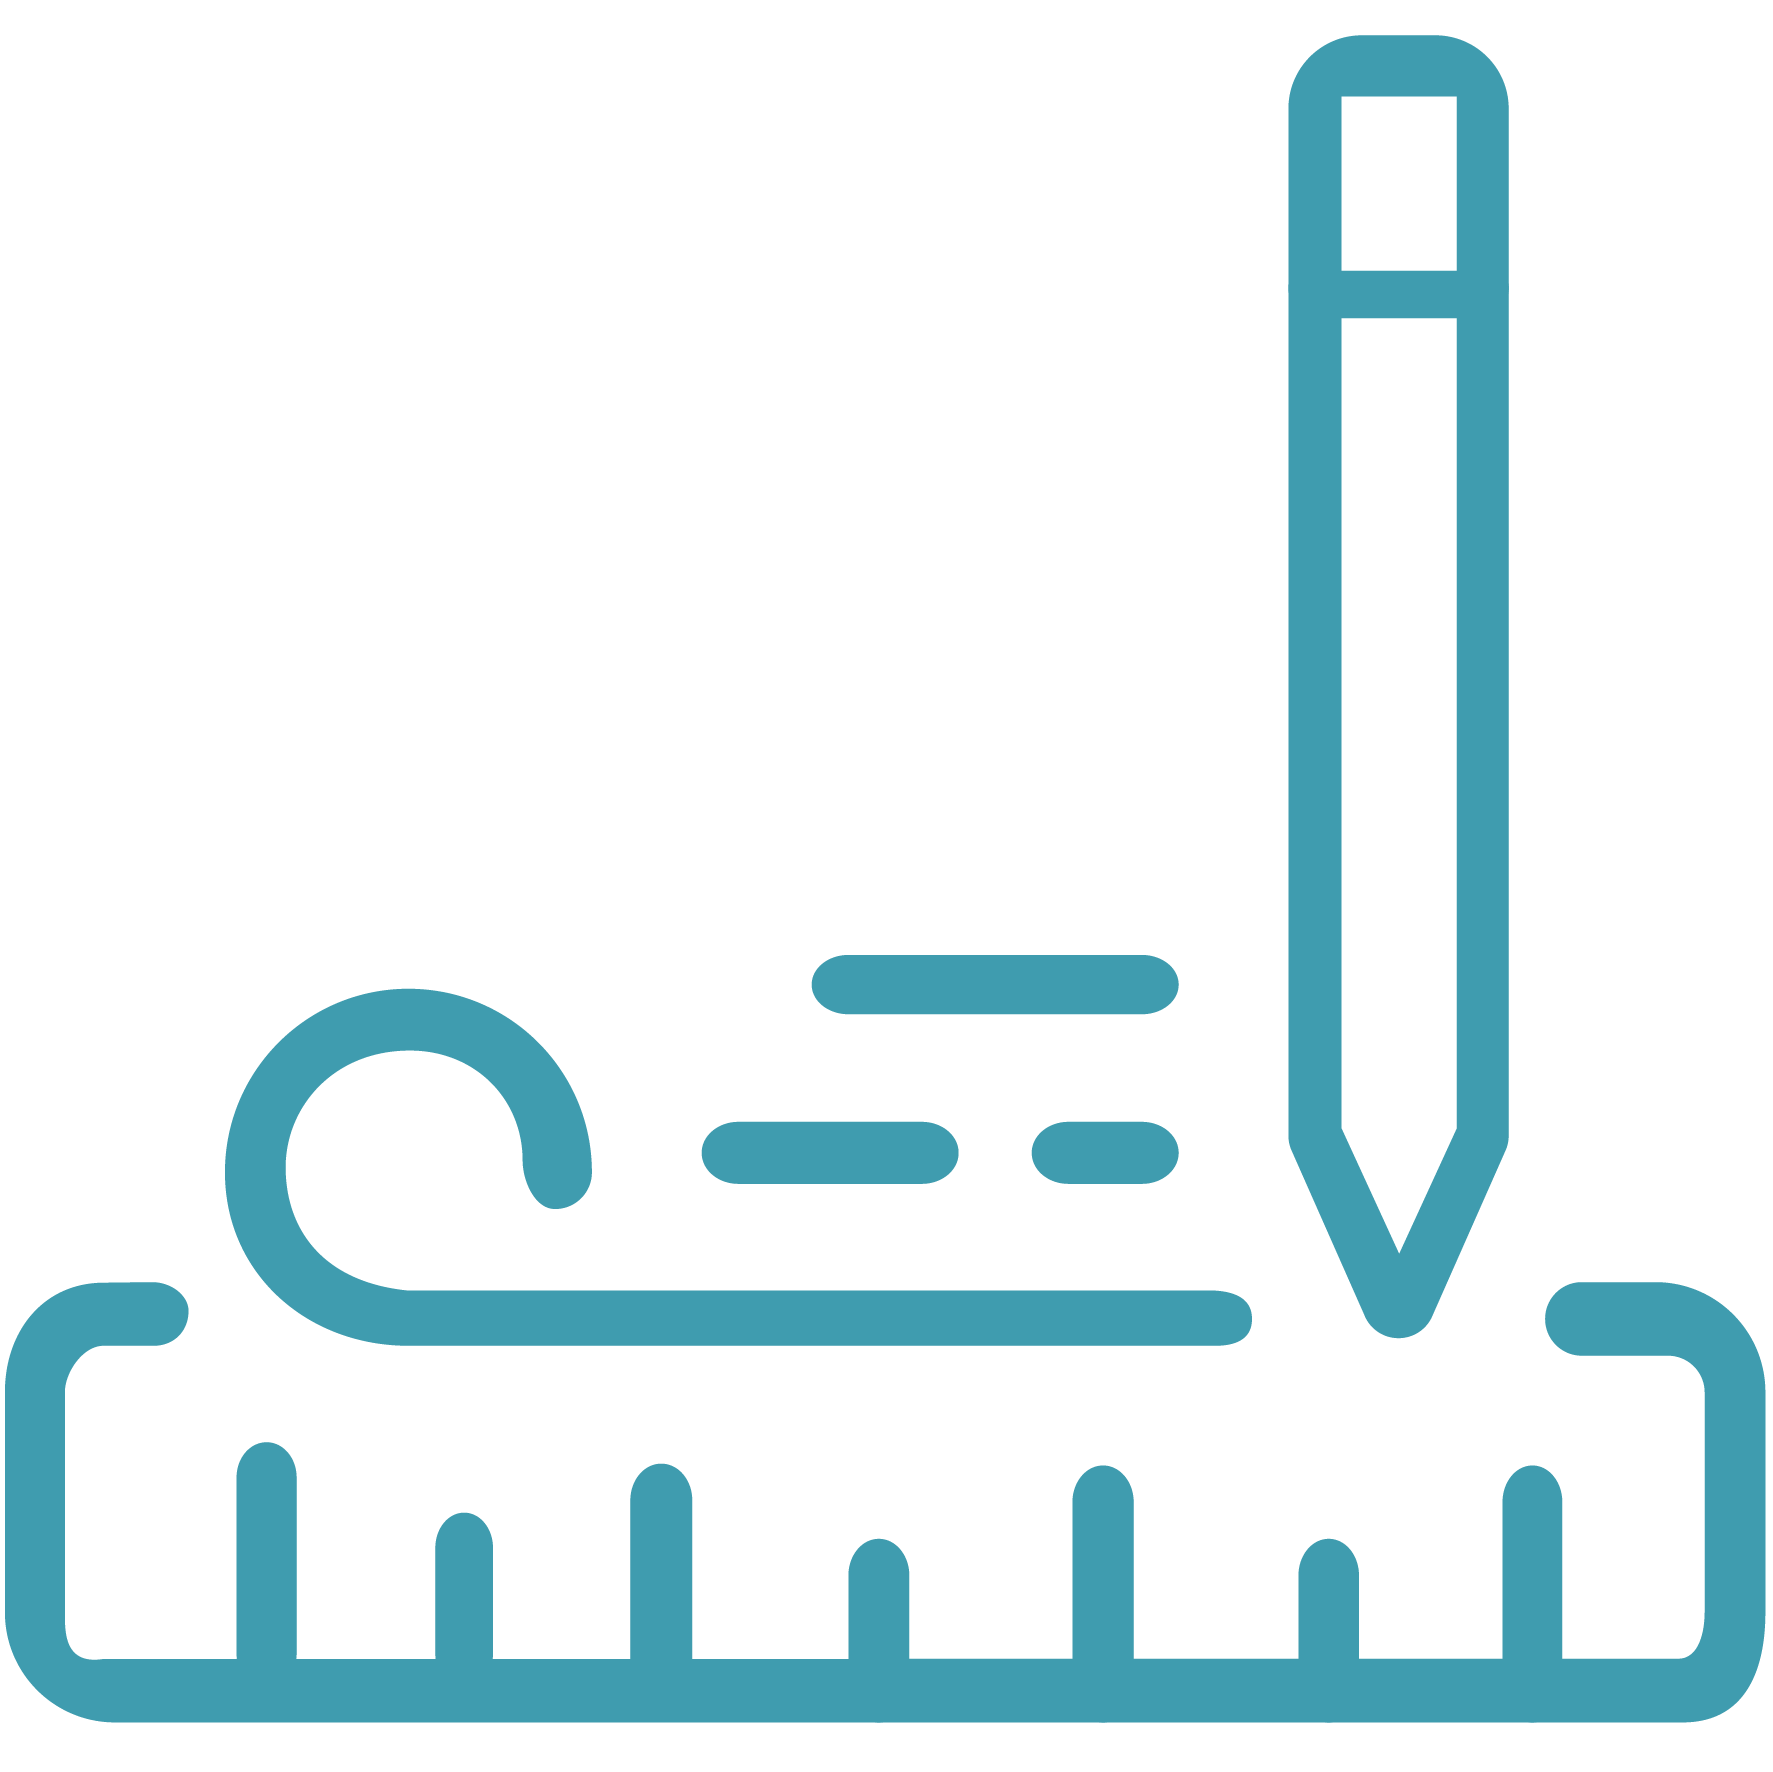 Blueprint_icons-06.png